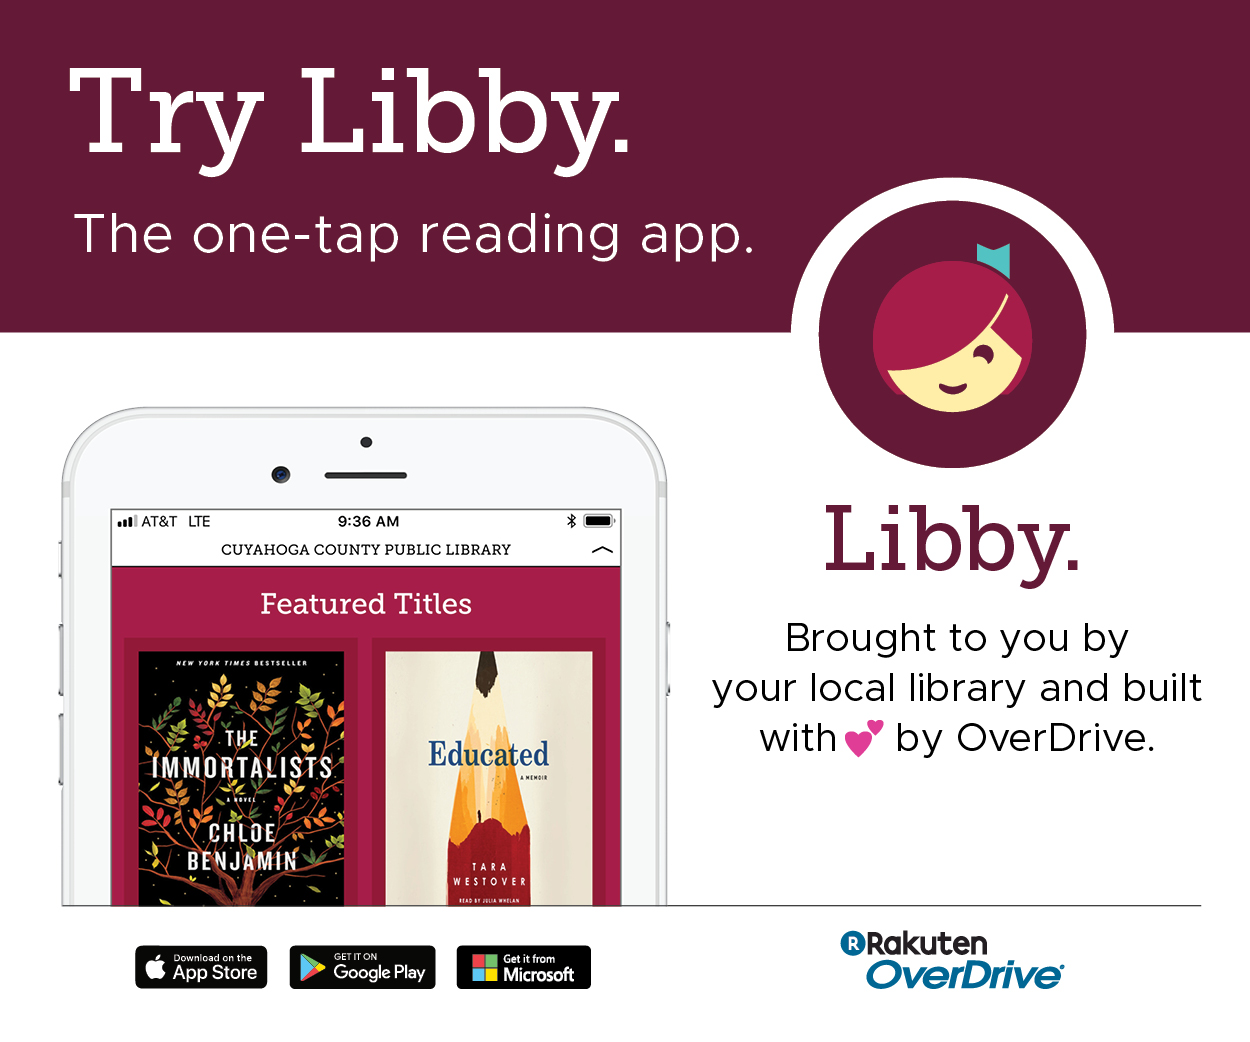 try Libby, the overdrive app